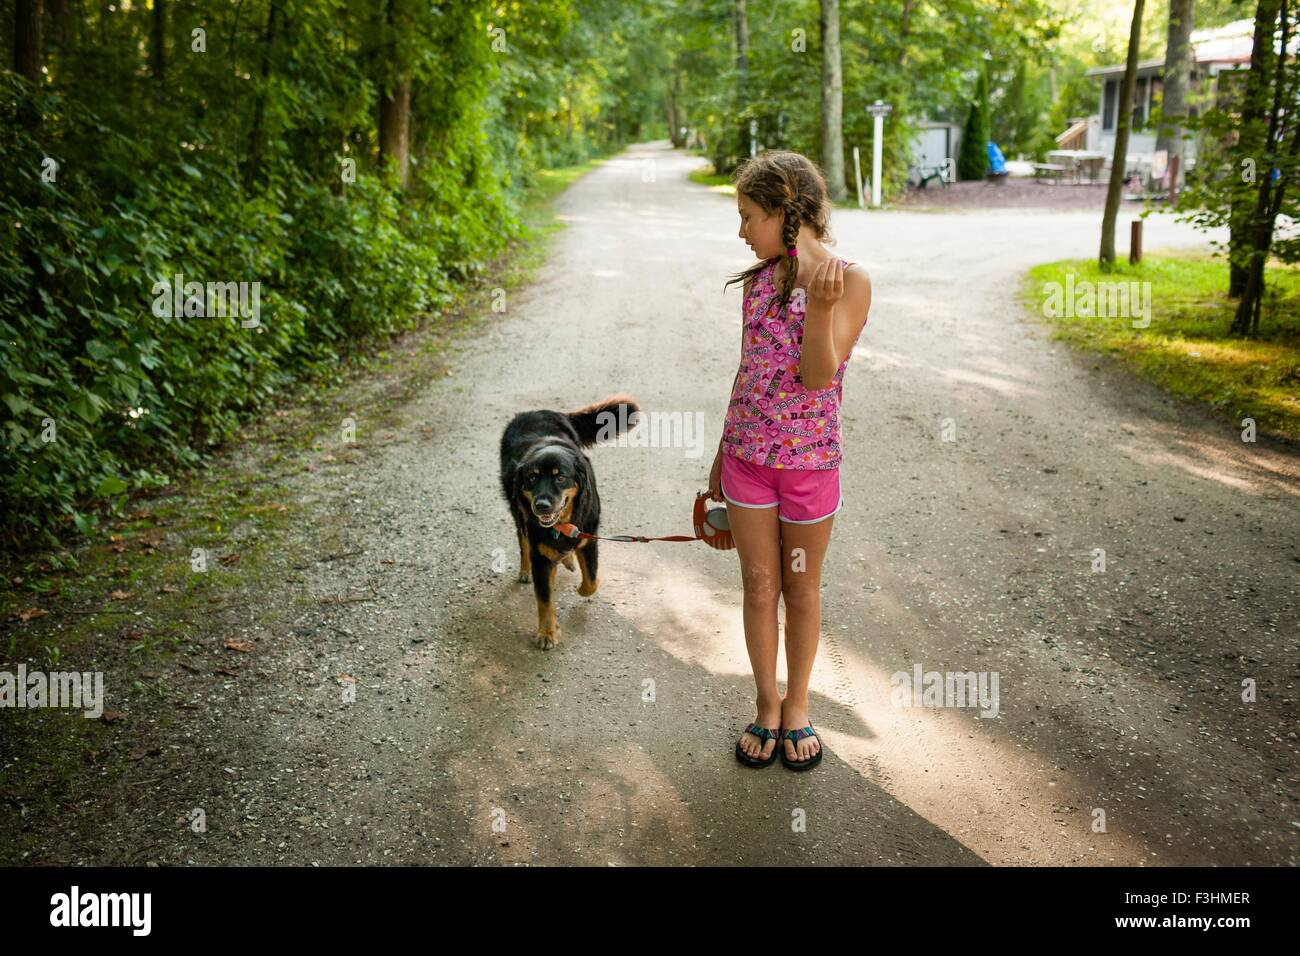 Front view of girl on dirt road, walking dog, looking over shoulder - Stock Image